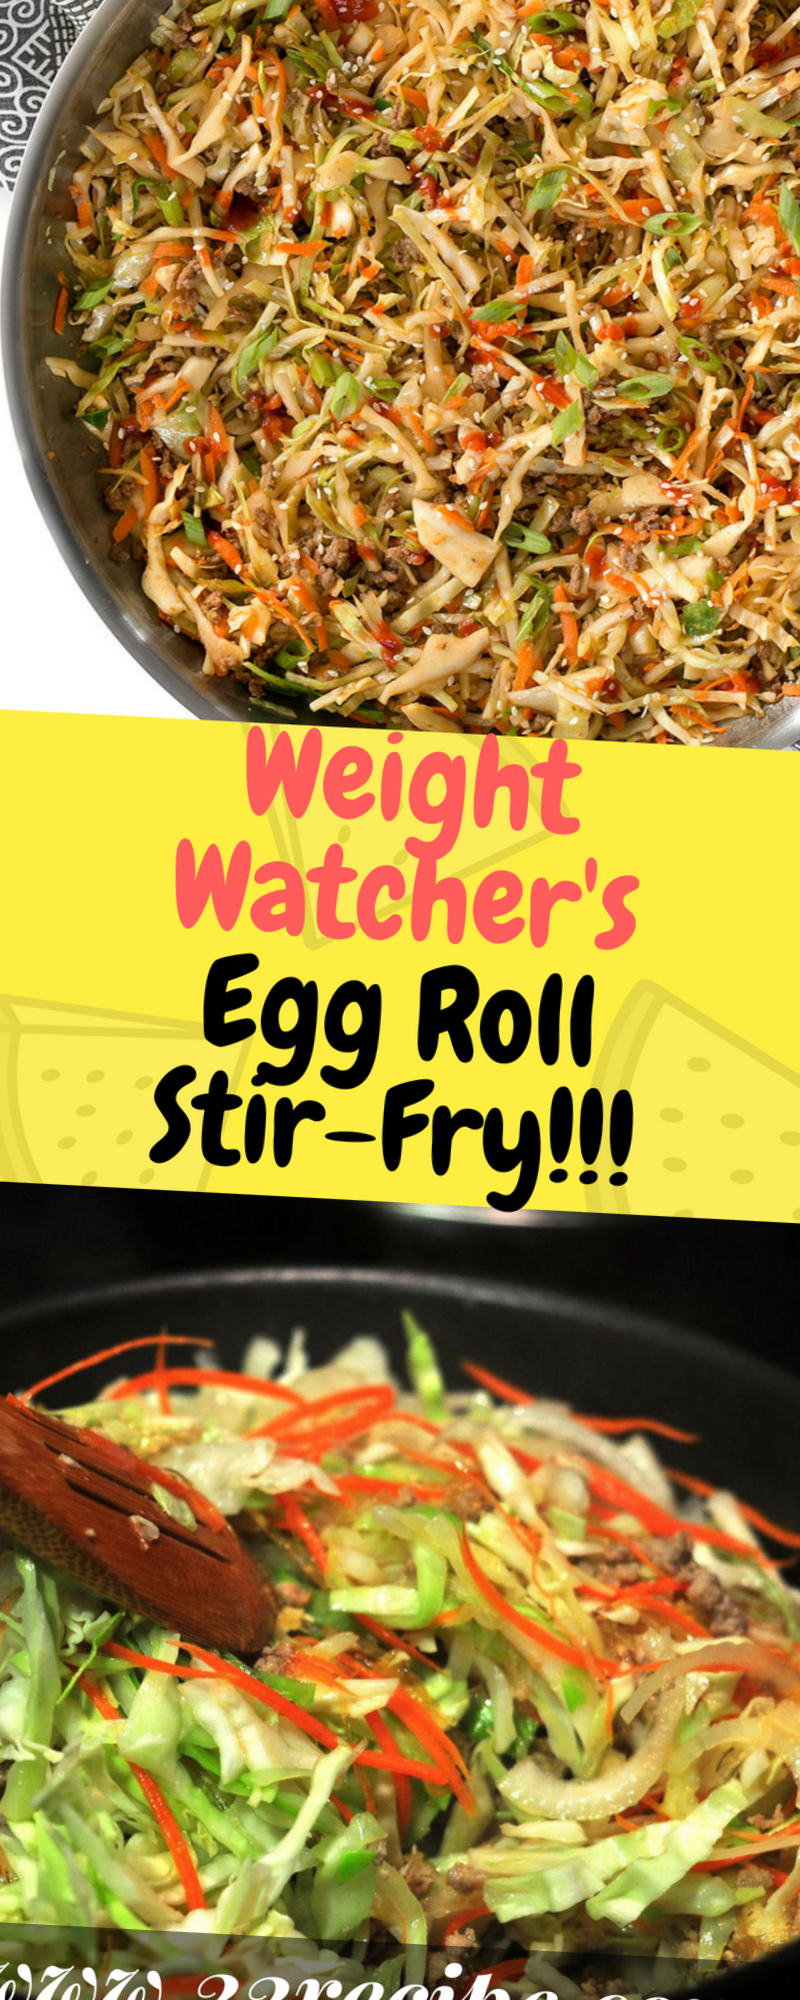 Weight Watcher's Egg Roll Stir-Fry - One of food #cabbagestirfry